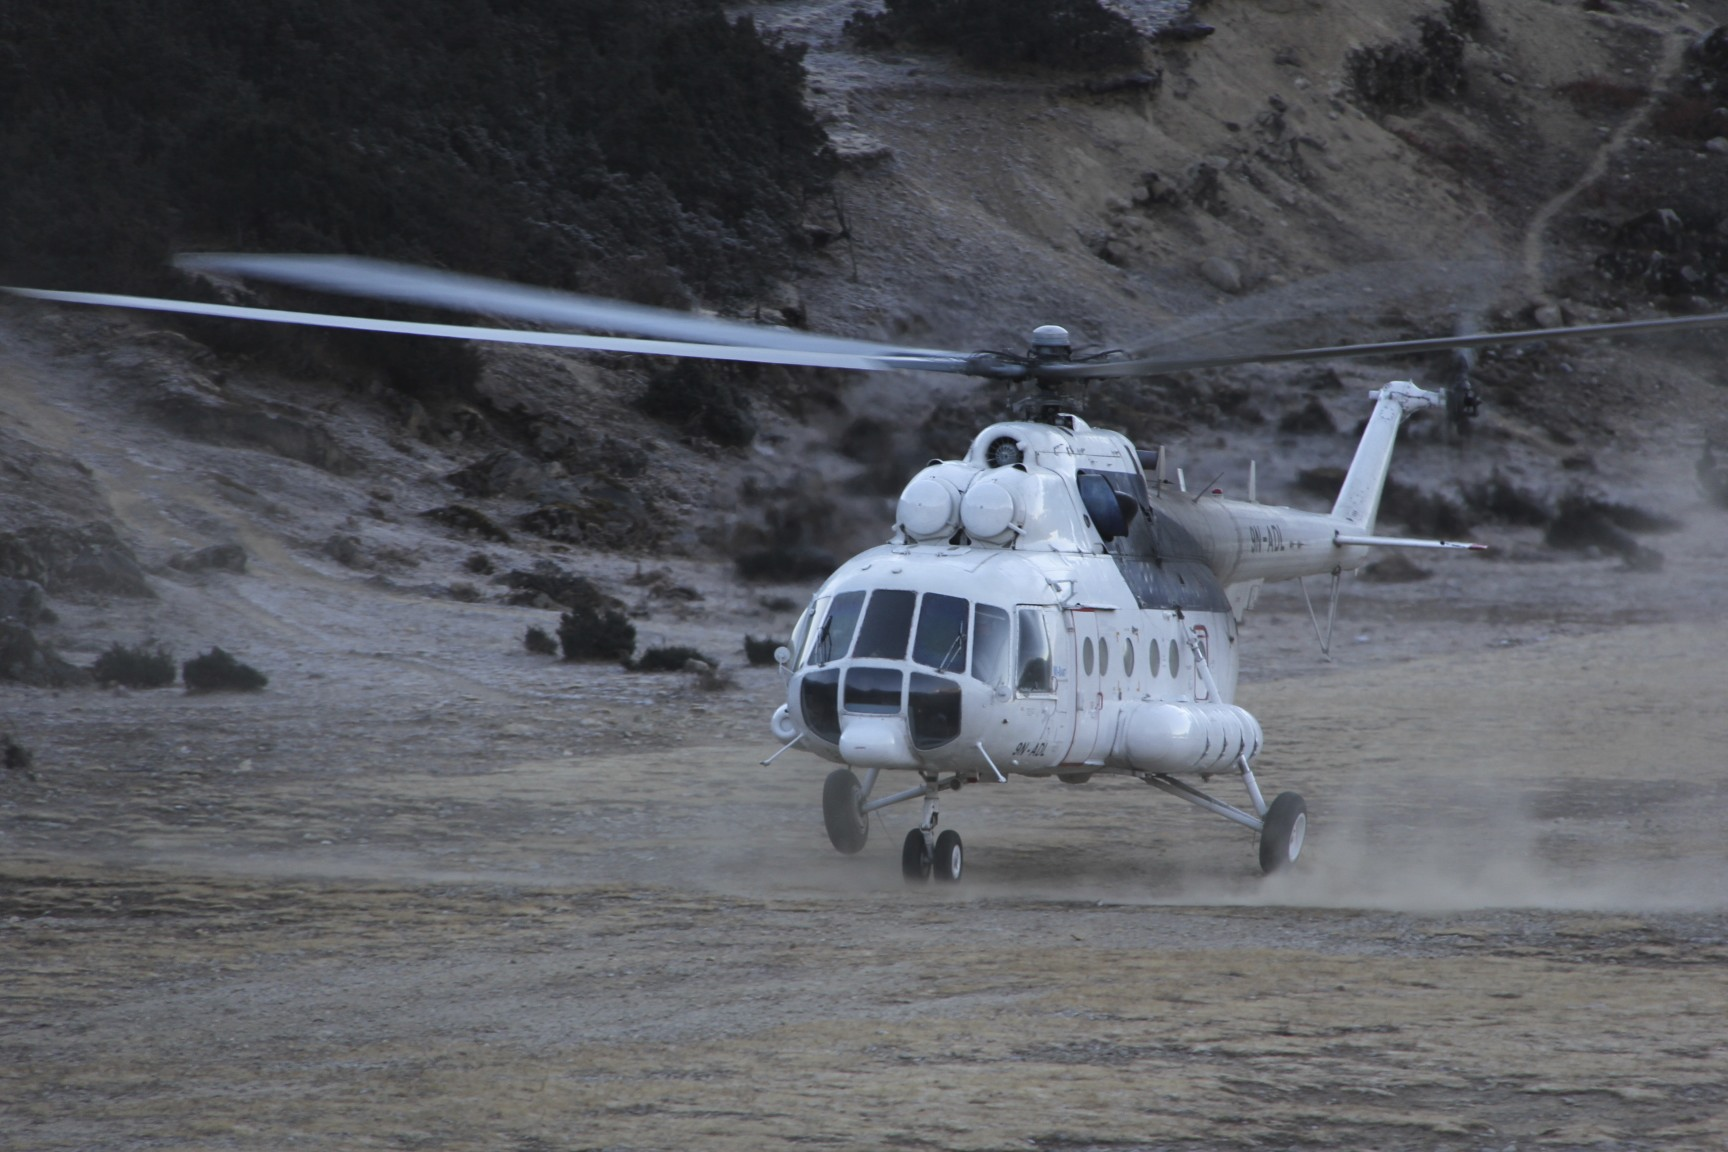 Quick way home! An old Soviet Mi 8 cargo helicopter. The pilots make extra cash by taking people to the road head from the Khumbu.